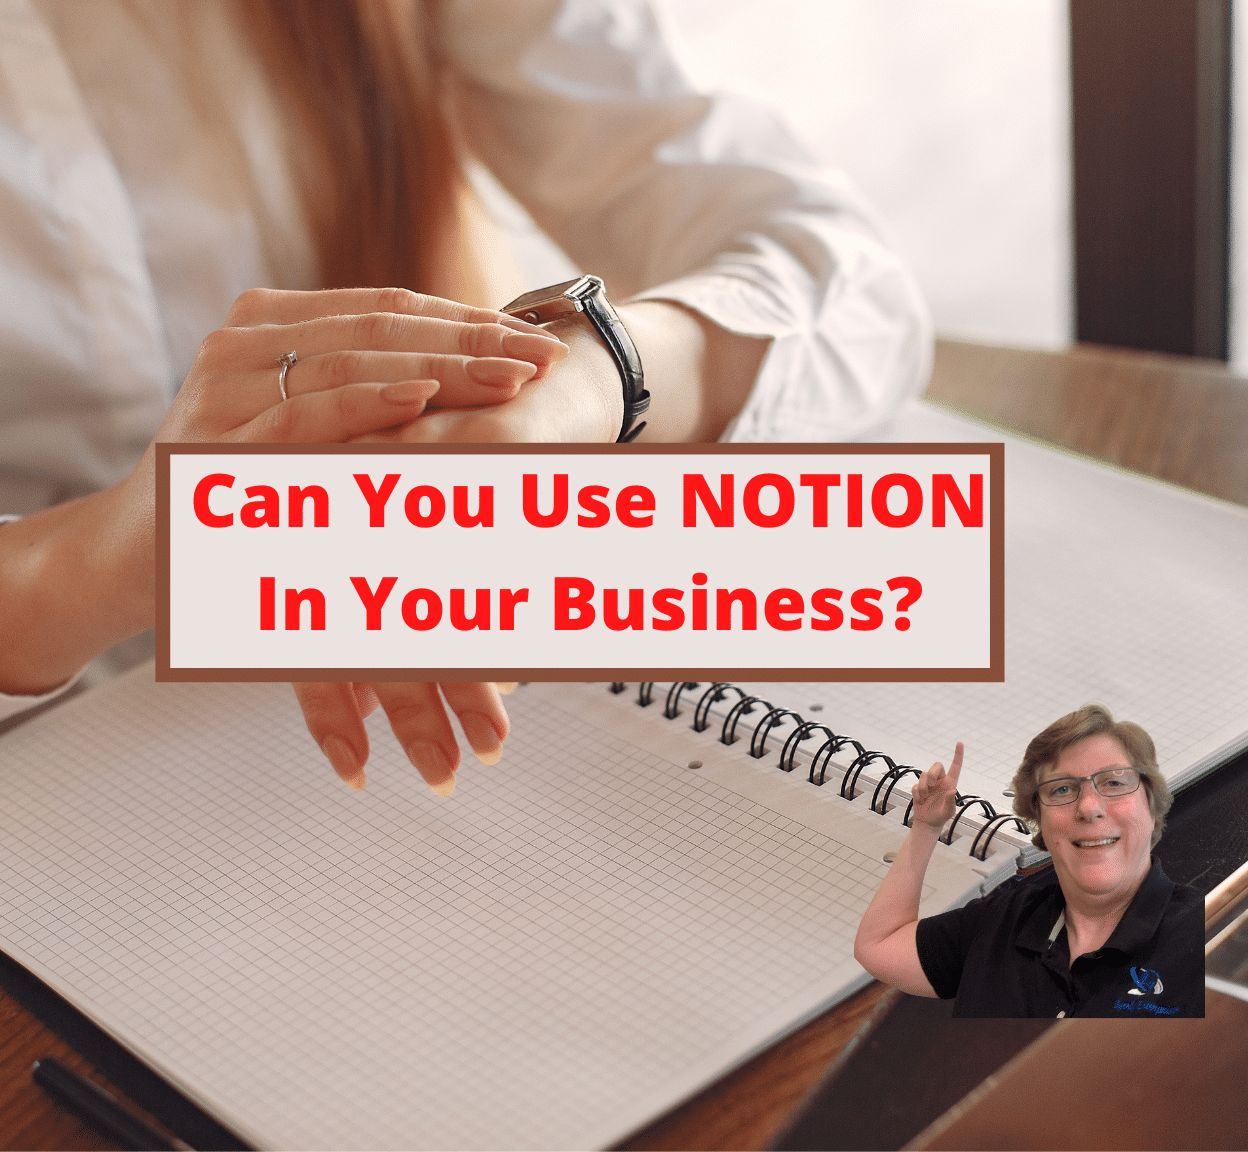 Can You Use NOTION In Your Business_